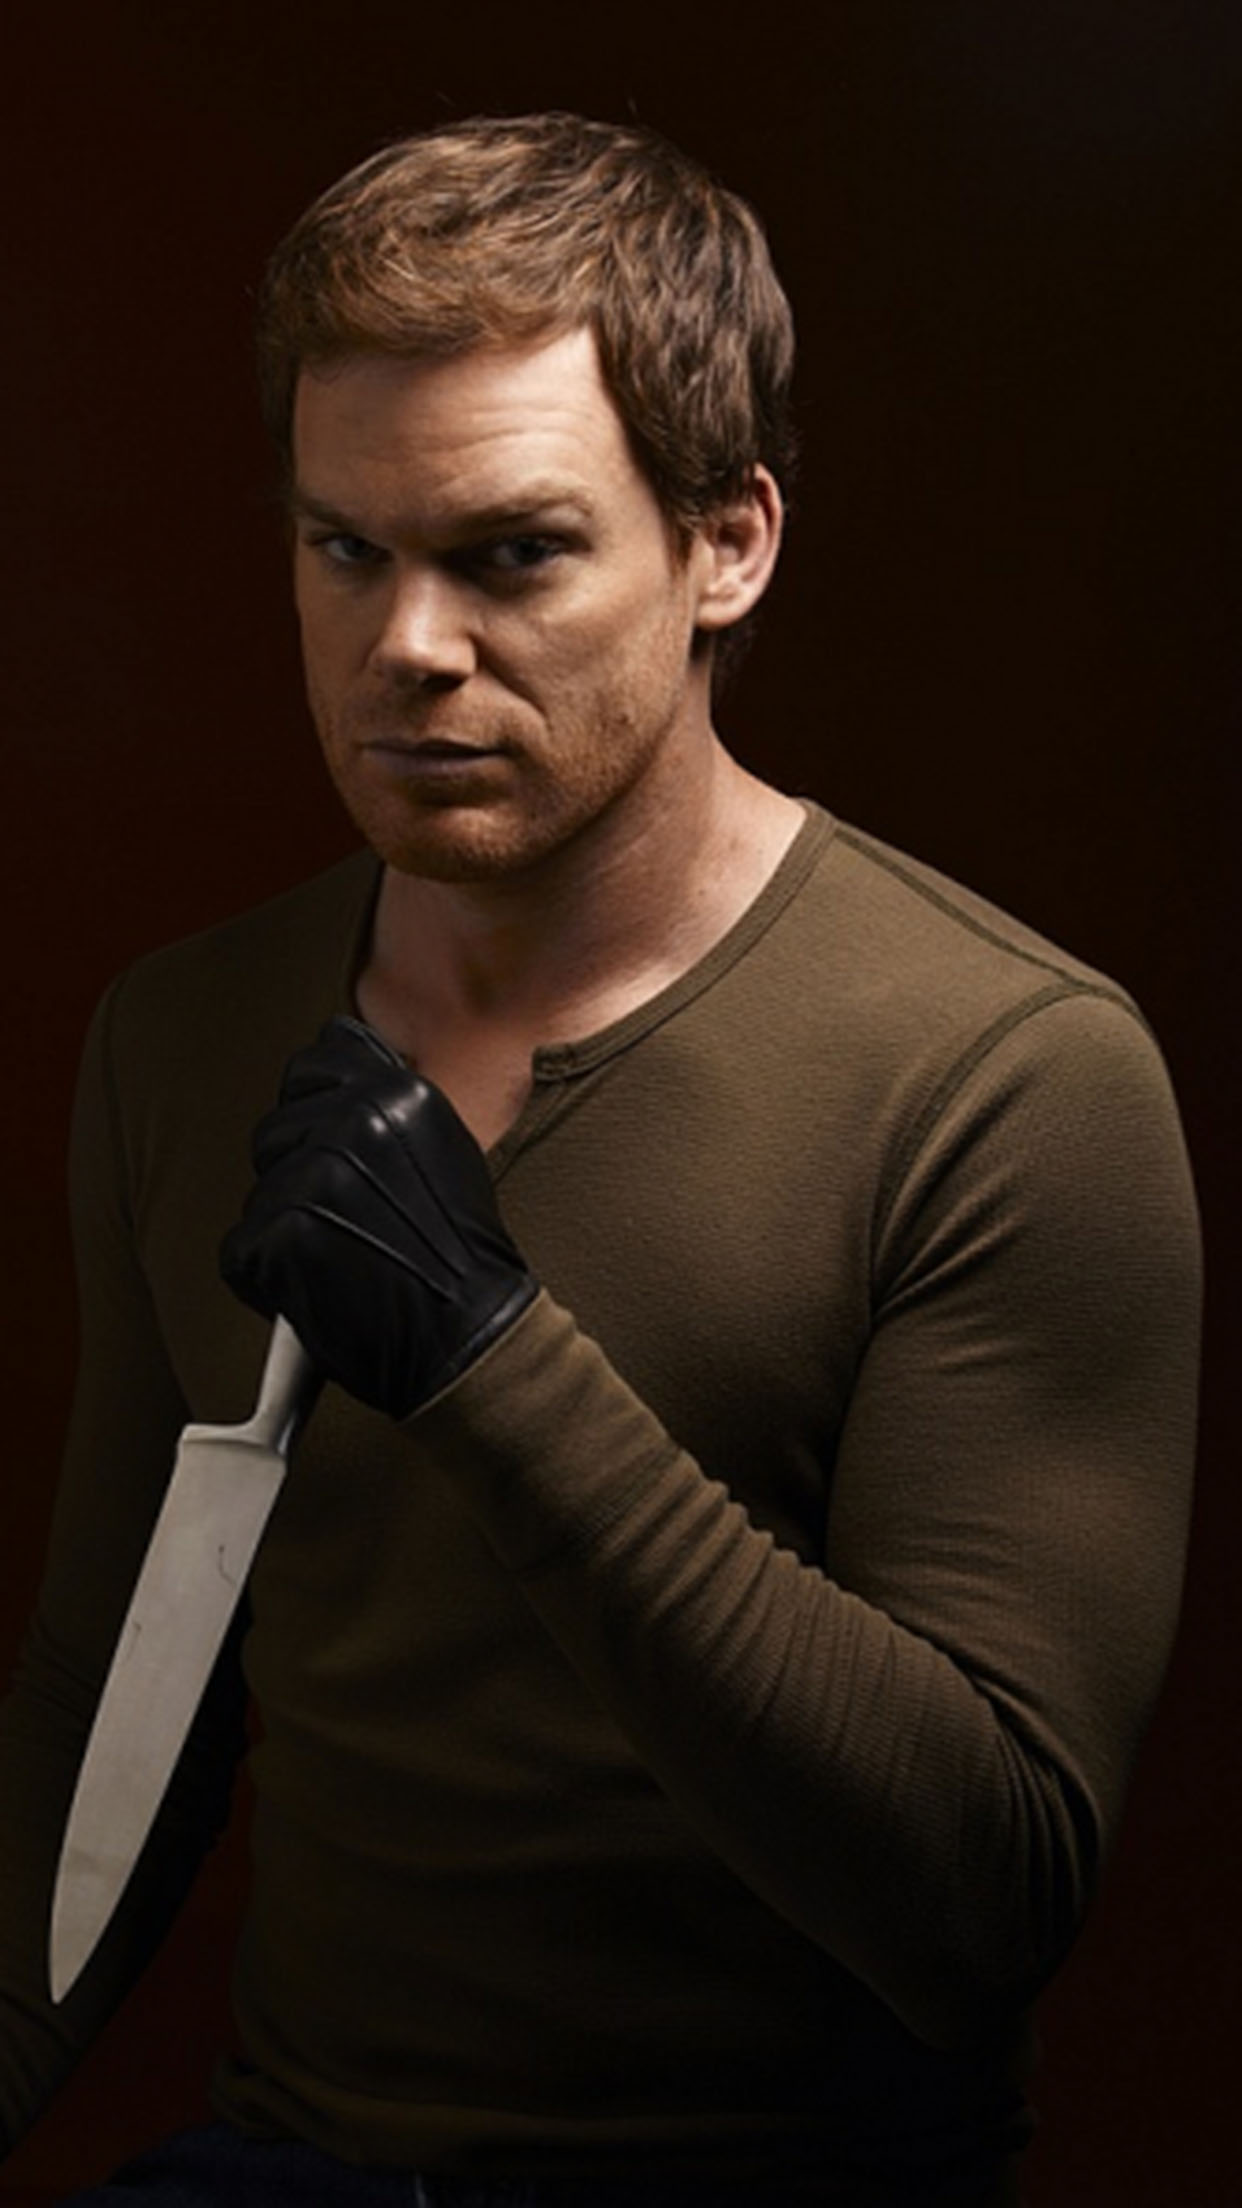 Iphone 4s Wallpapers Free Dexter Michael C Hall Wallpaper For Iphone X 8 7 6